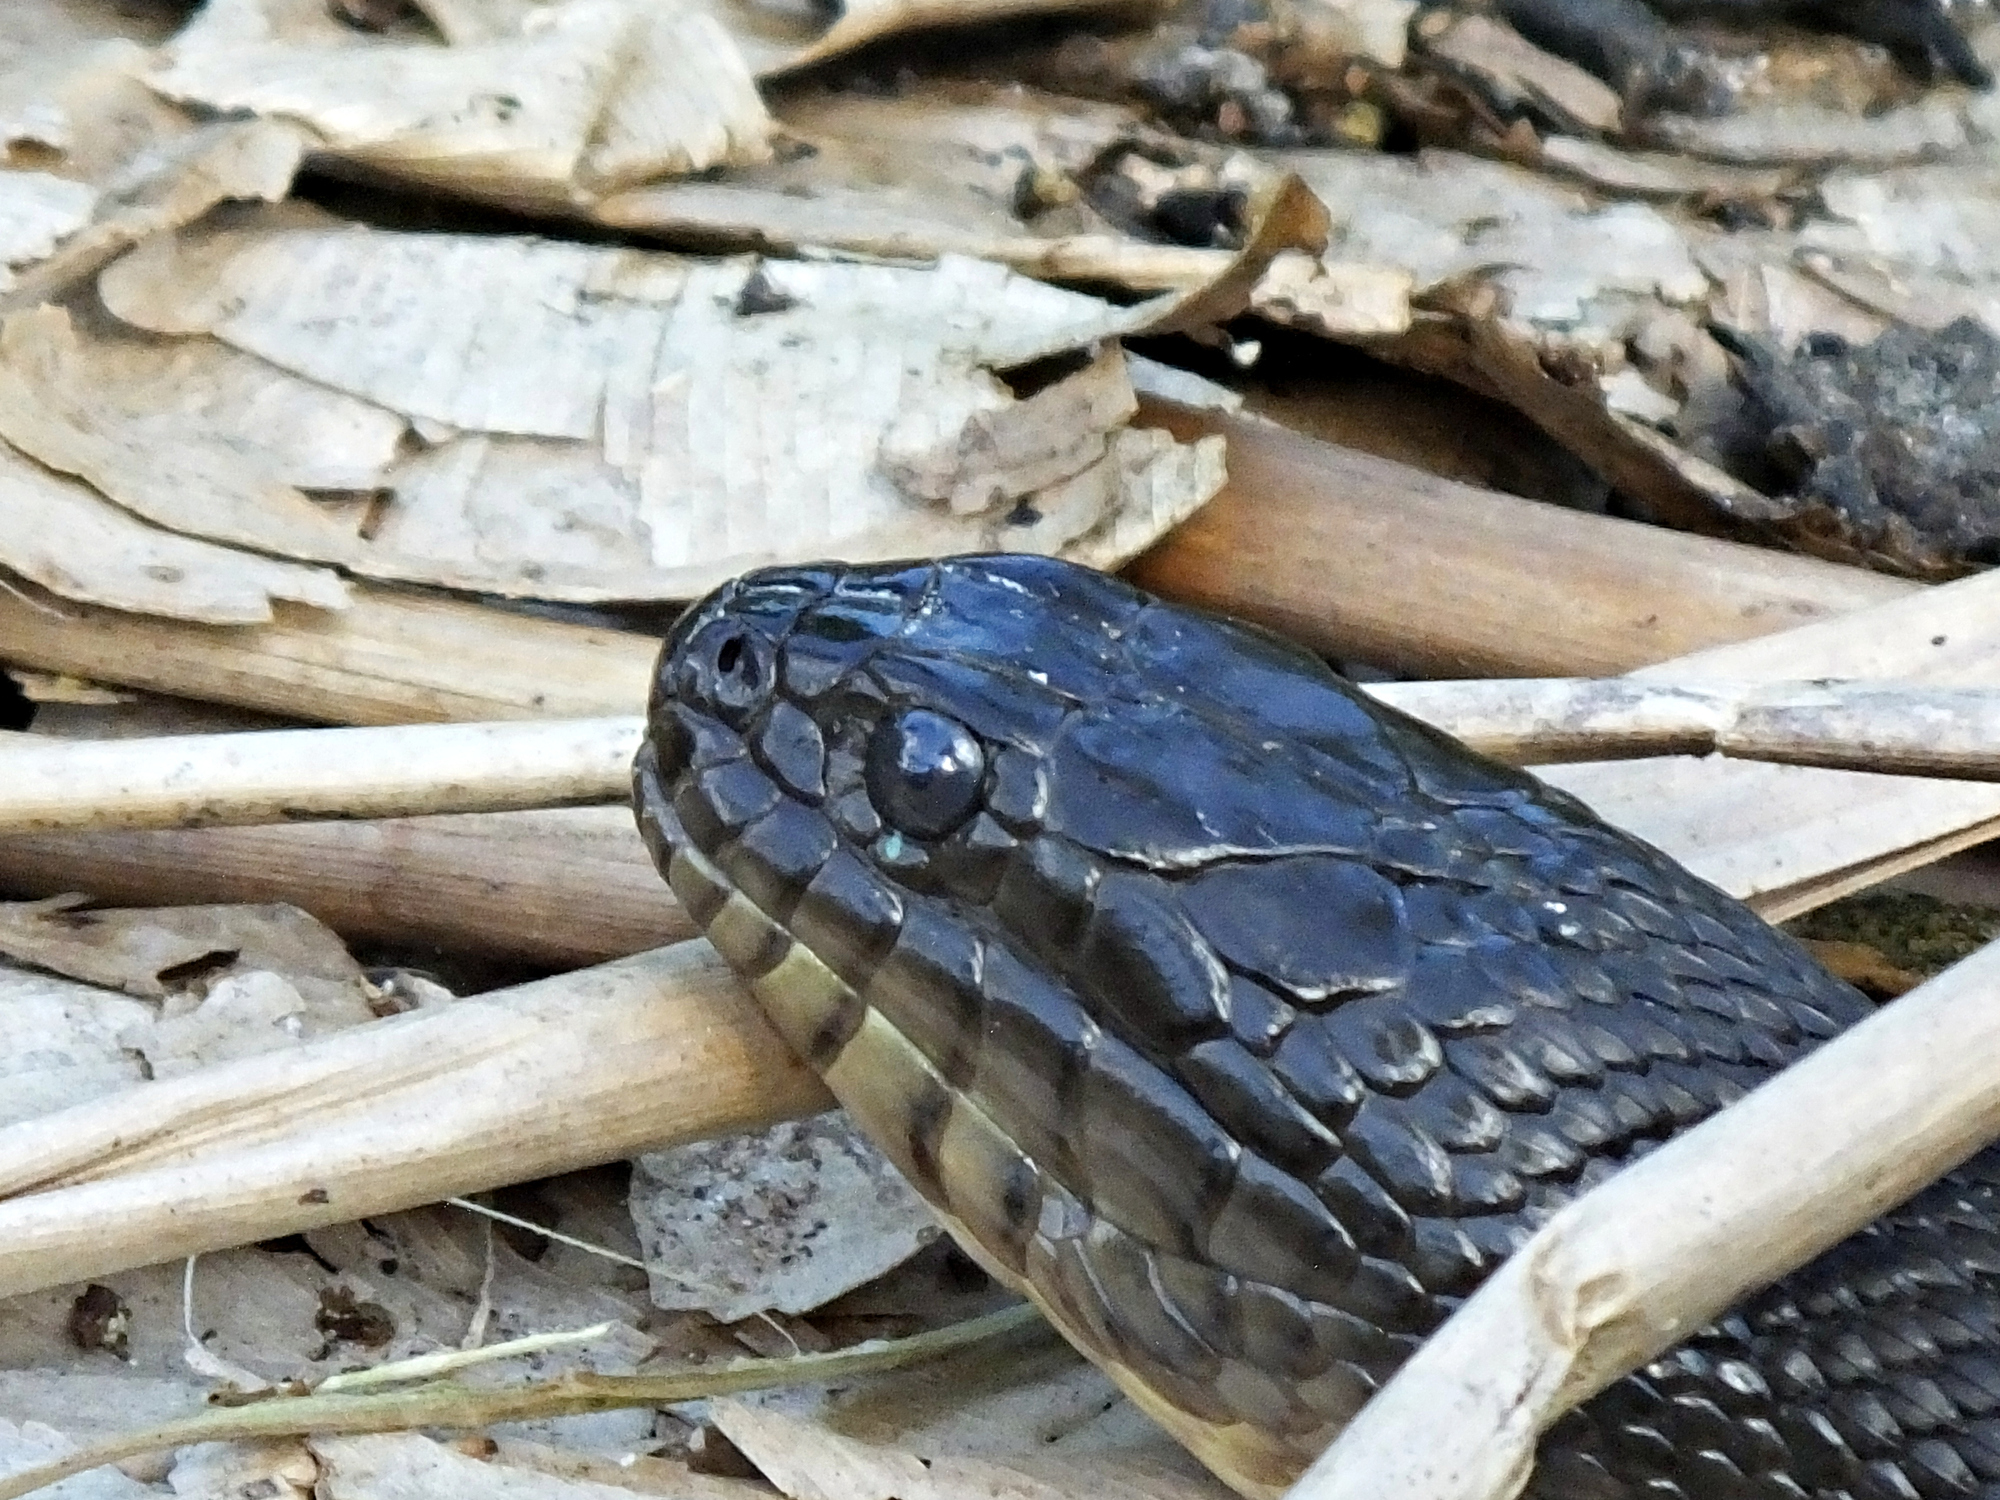 A Florida green water snake, possibly looking for love?